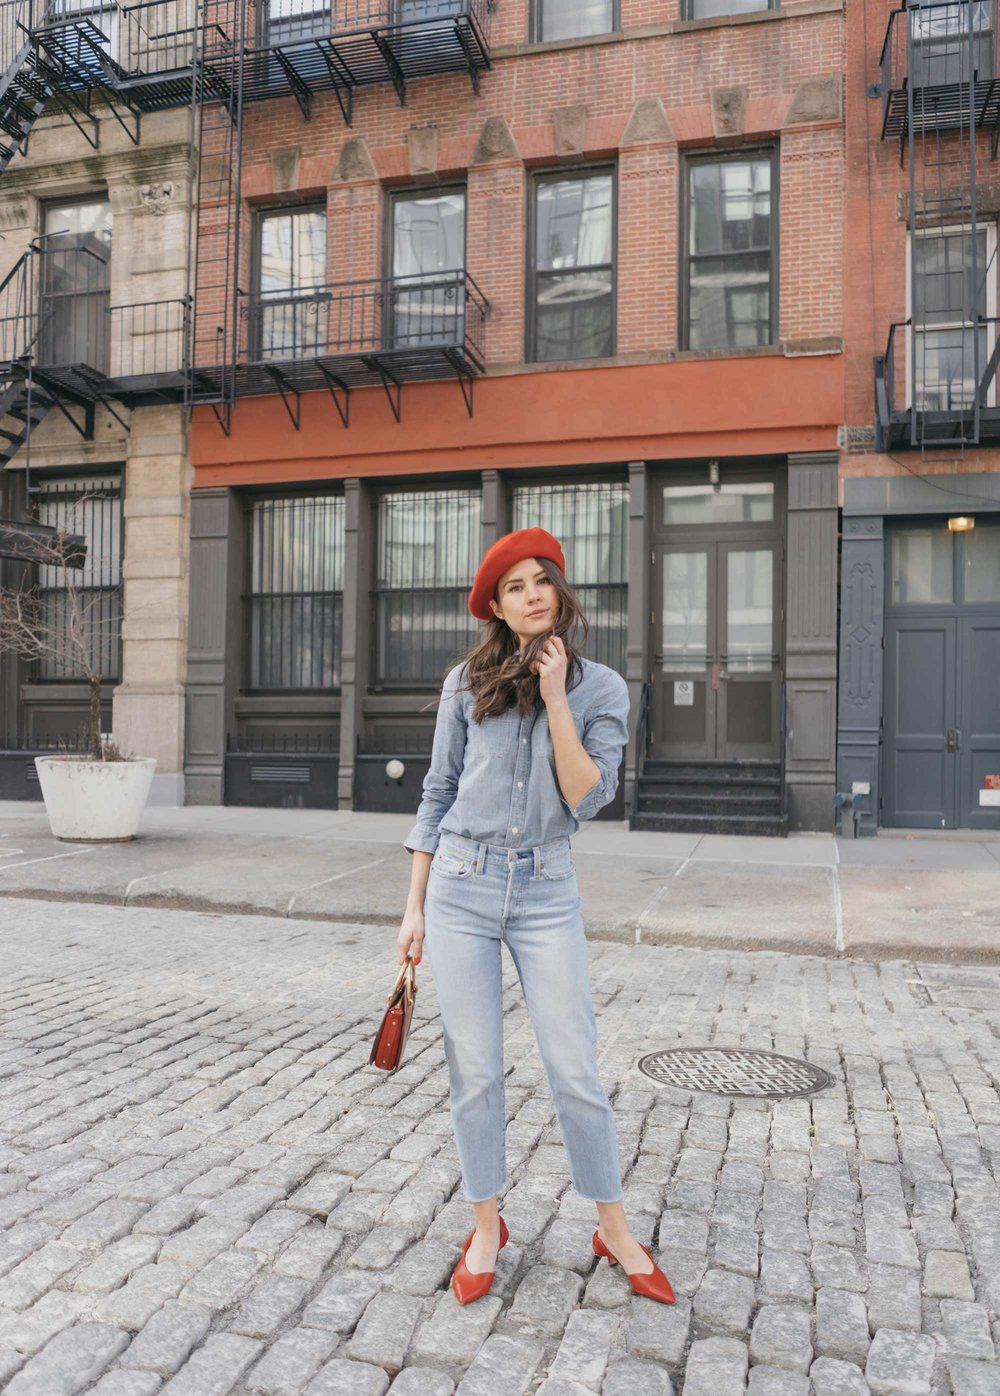 Madewell-Chambray-Boyfriend-Shirt--Levi's-Wedgie-High-Rise-Straight-Jeans-Chloe-Pixie-Leather-Crossbody-Bag-Sigerson-Morrison-Red-Slingback-Pump-4.jpg